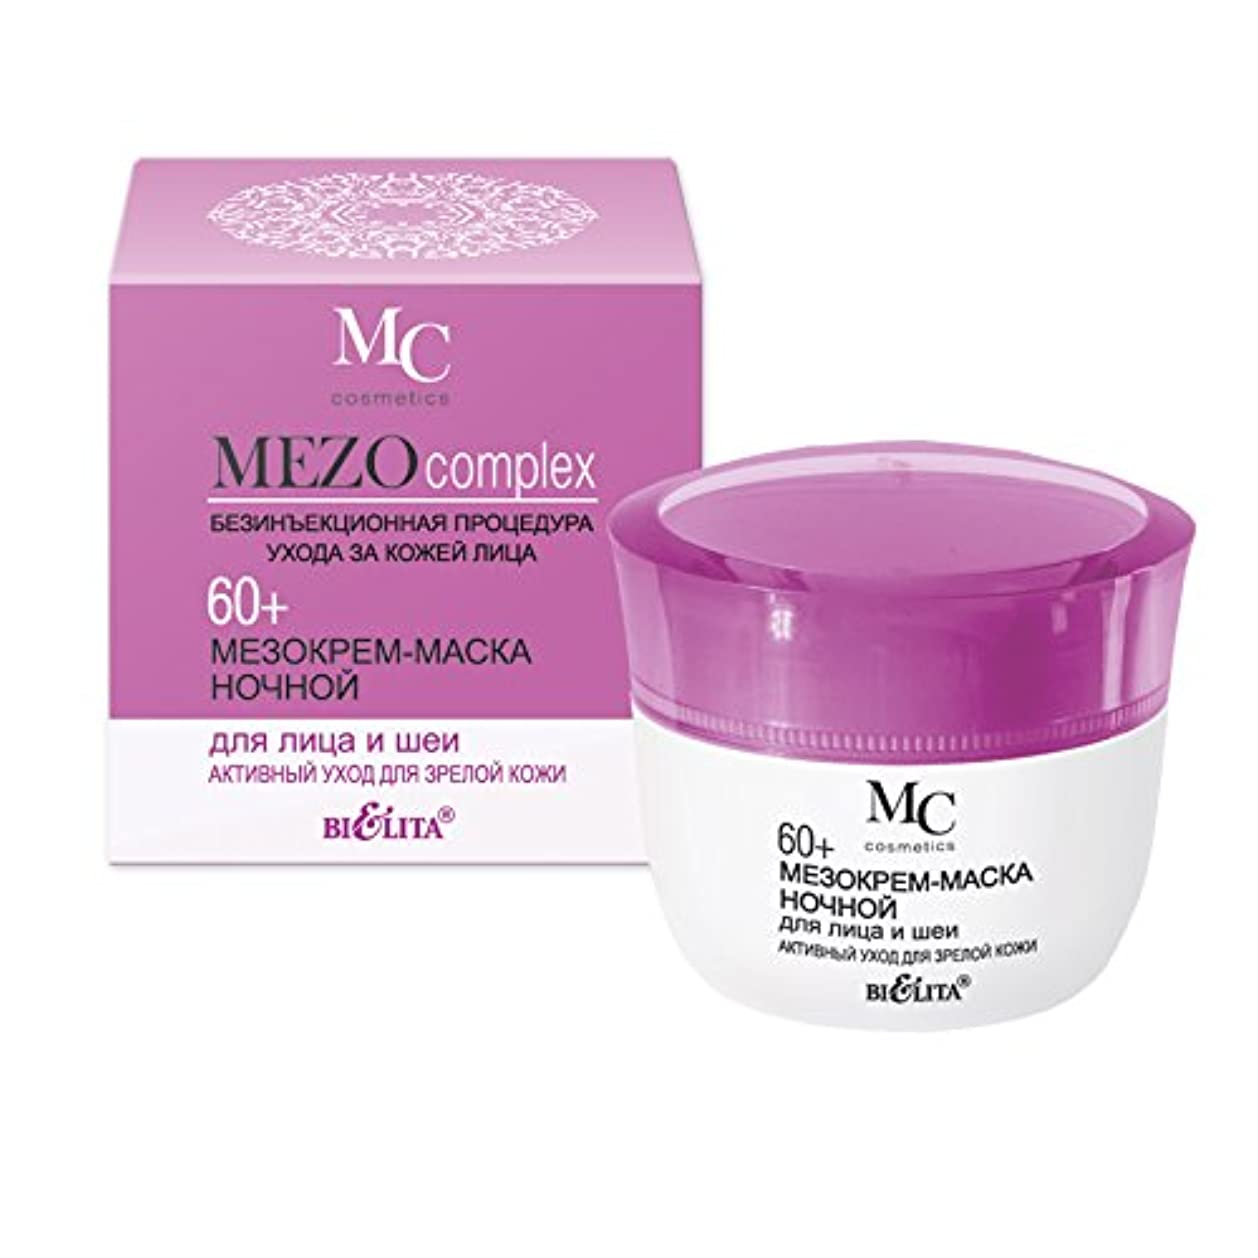 伝導率こっそり機会Night cream mask (MEZO) for face and neck 60+ care for mature skin | Hyaluronic acid, Vitamin E, Peach seed oil...